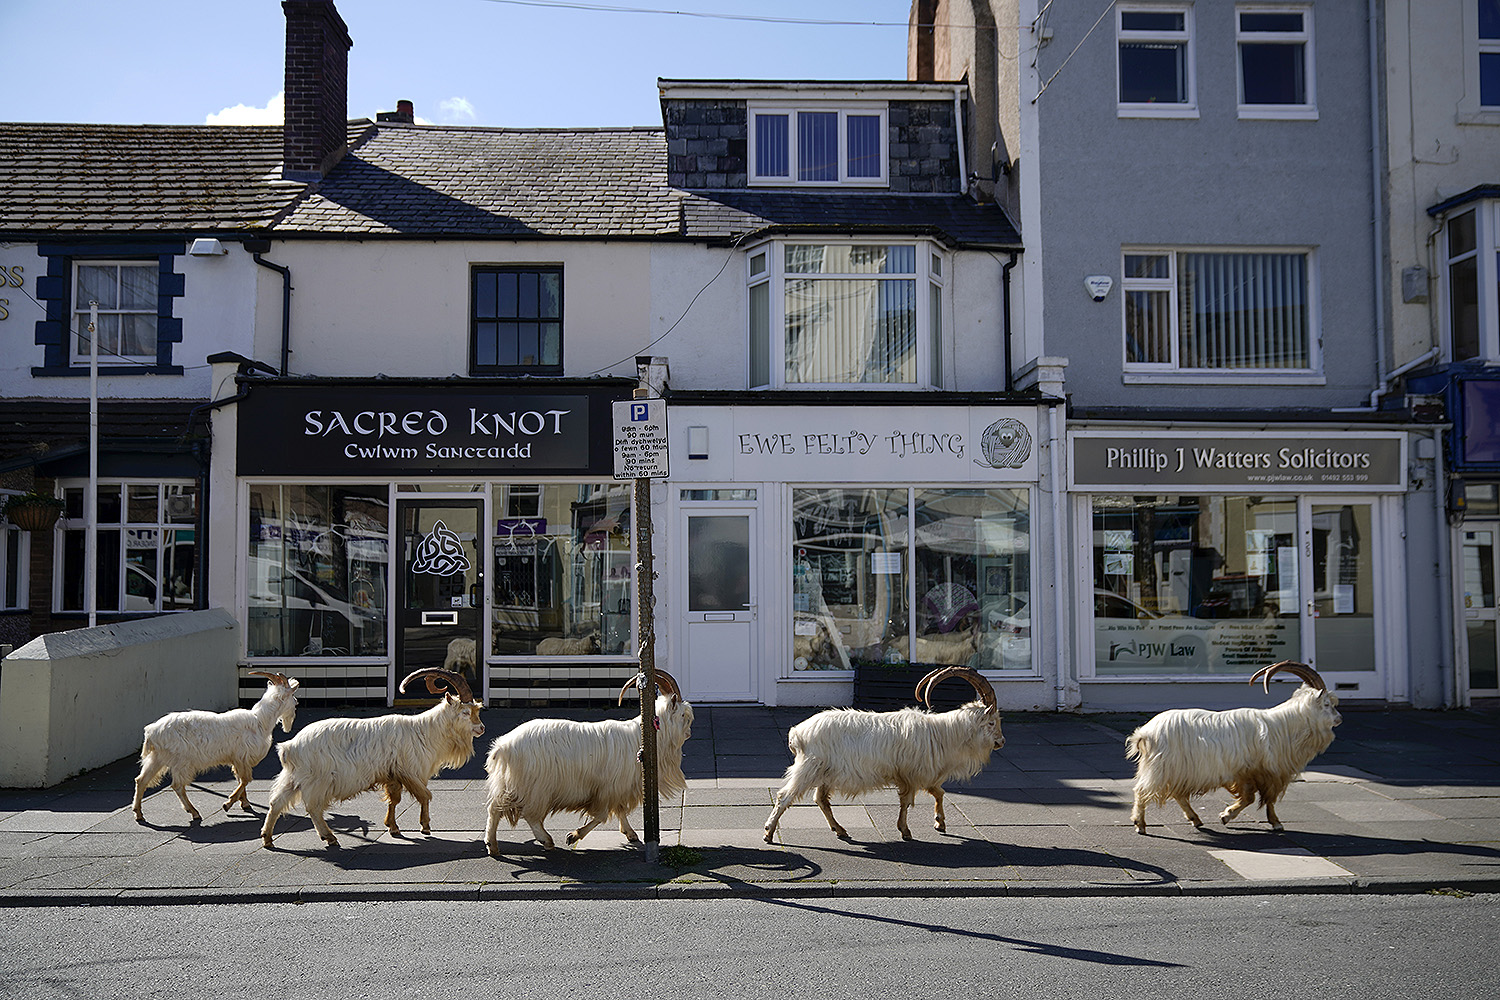 These roaming goats. Mountain goats roam the deserted streets of Llandudno, Wales, on March 31. The goats normally live on the rocky Great Orme headland, but the herd was drawn to the town by the lack of people and tourists during quarantine measures. Christopher Furlong/Getty Images